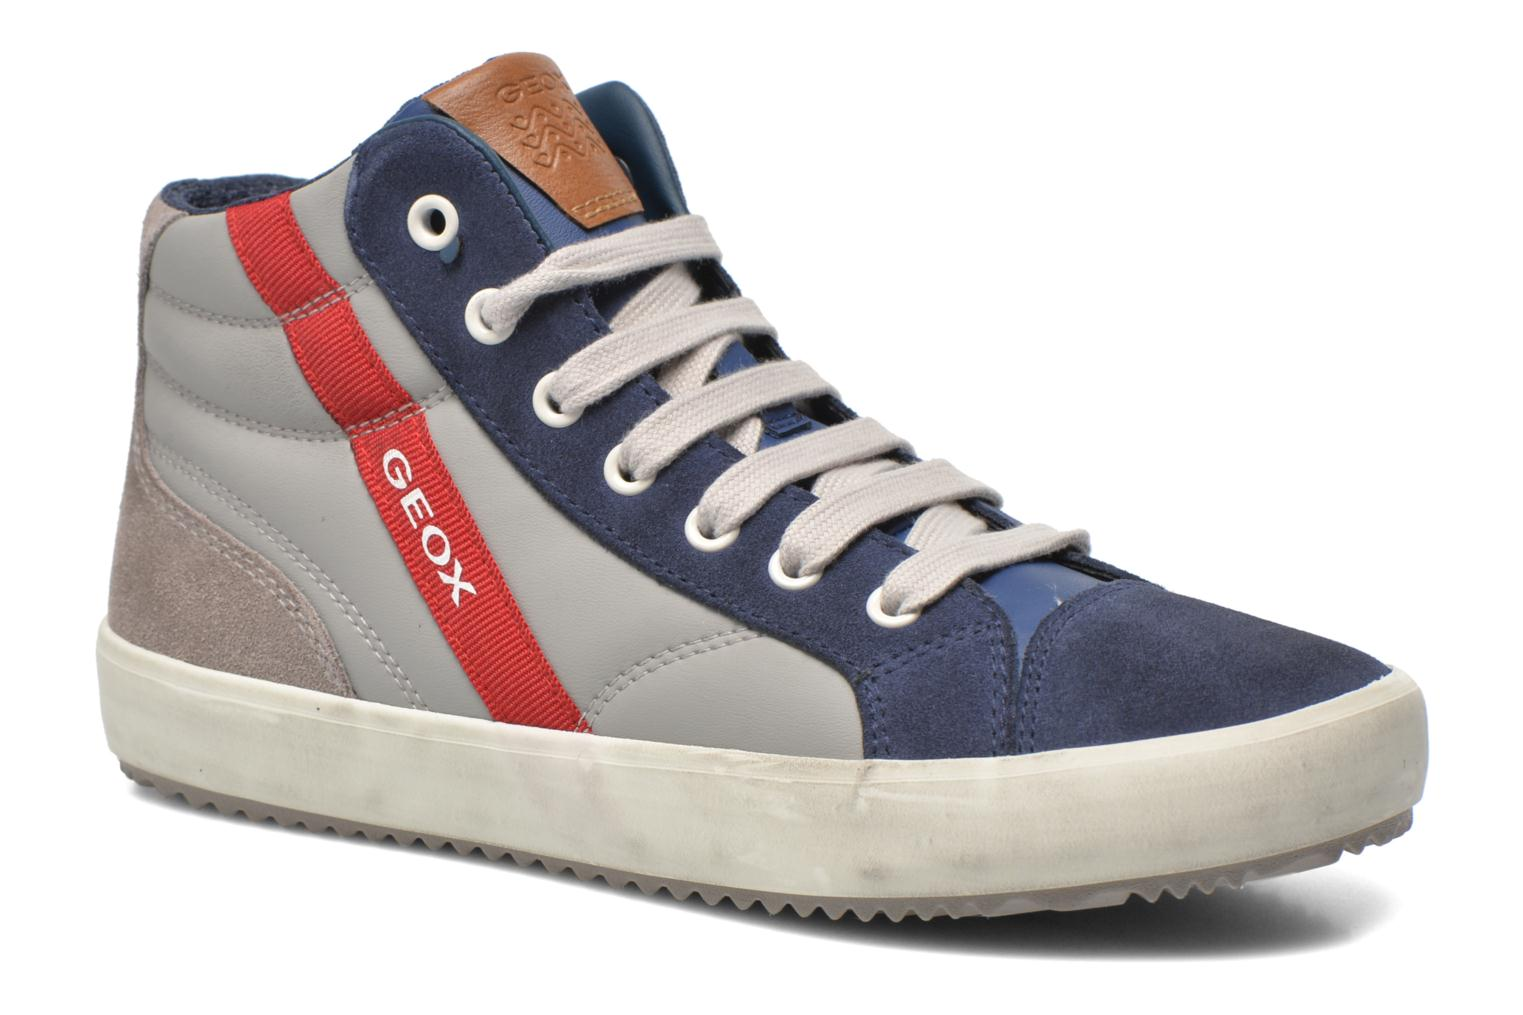 J Alonisso B. B J642Cb Grey/blue